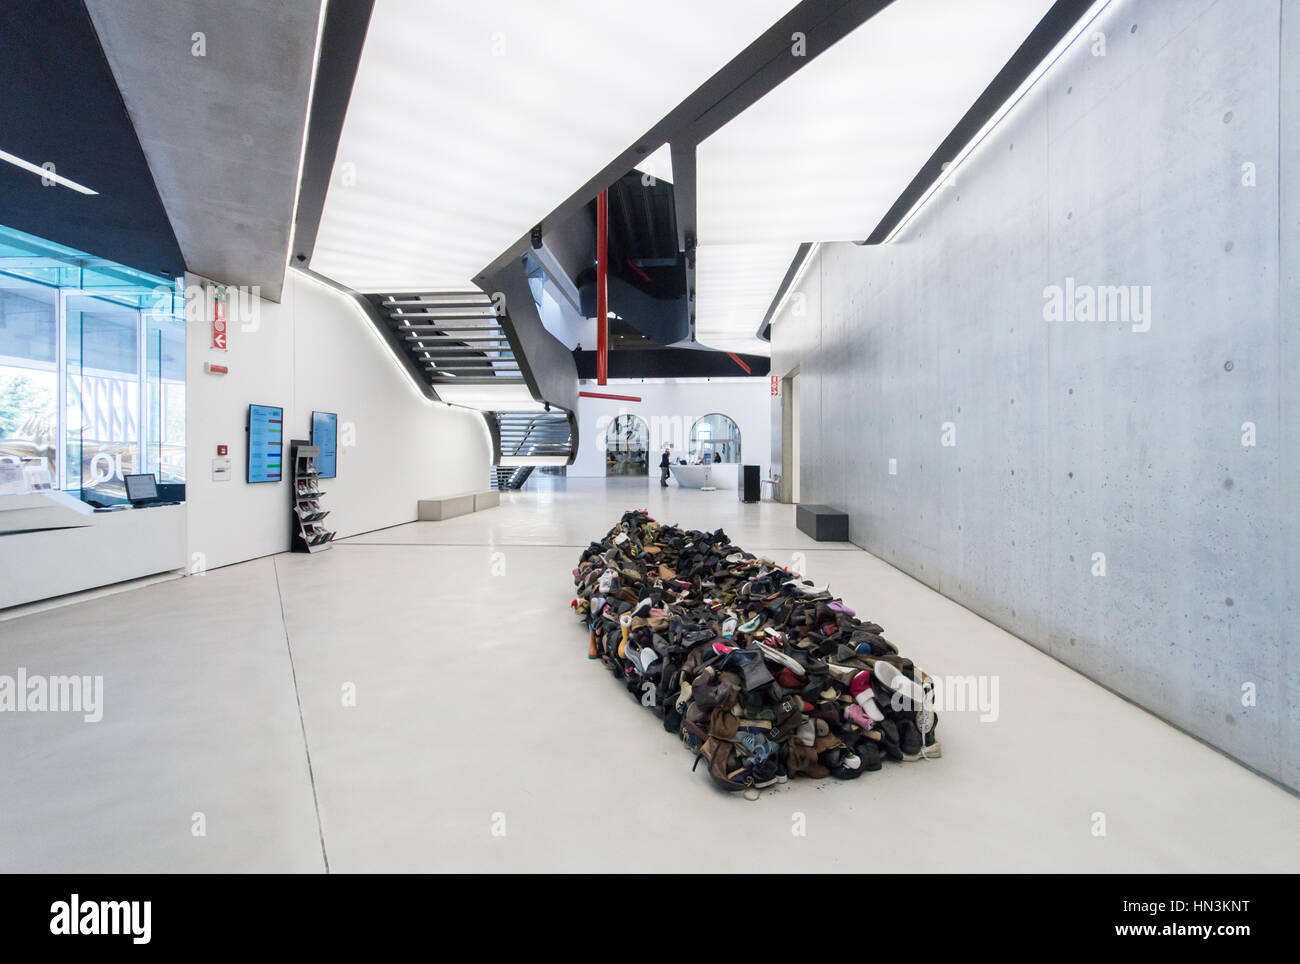 The sculpture Barka by Albanian artist Sislej Xhafa on view in the lobby of the MAXXI art museum in Rome designed - Stock Image